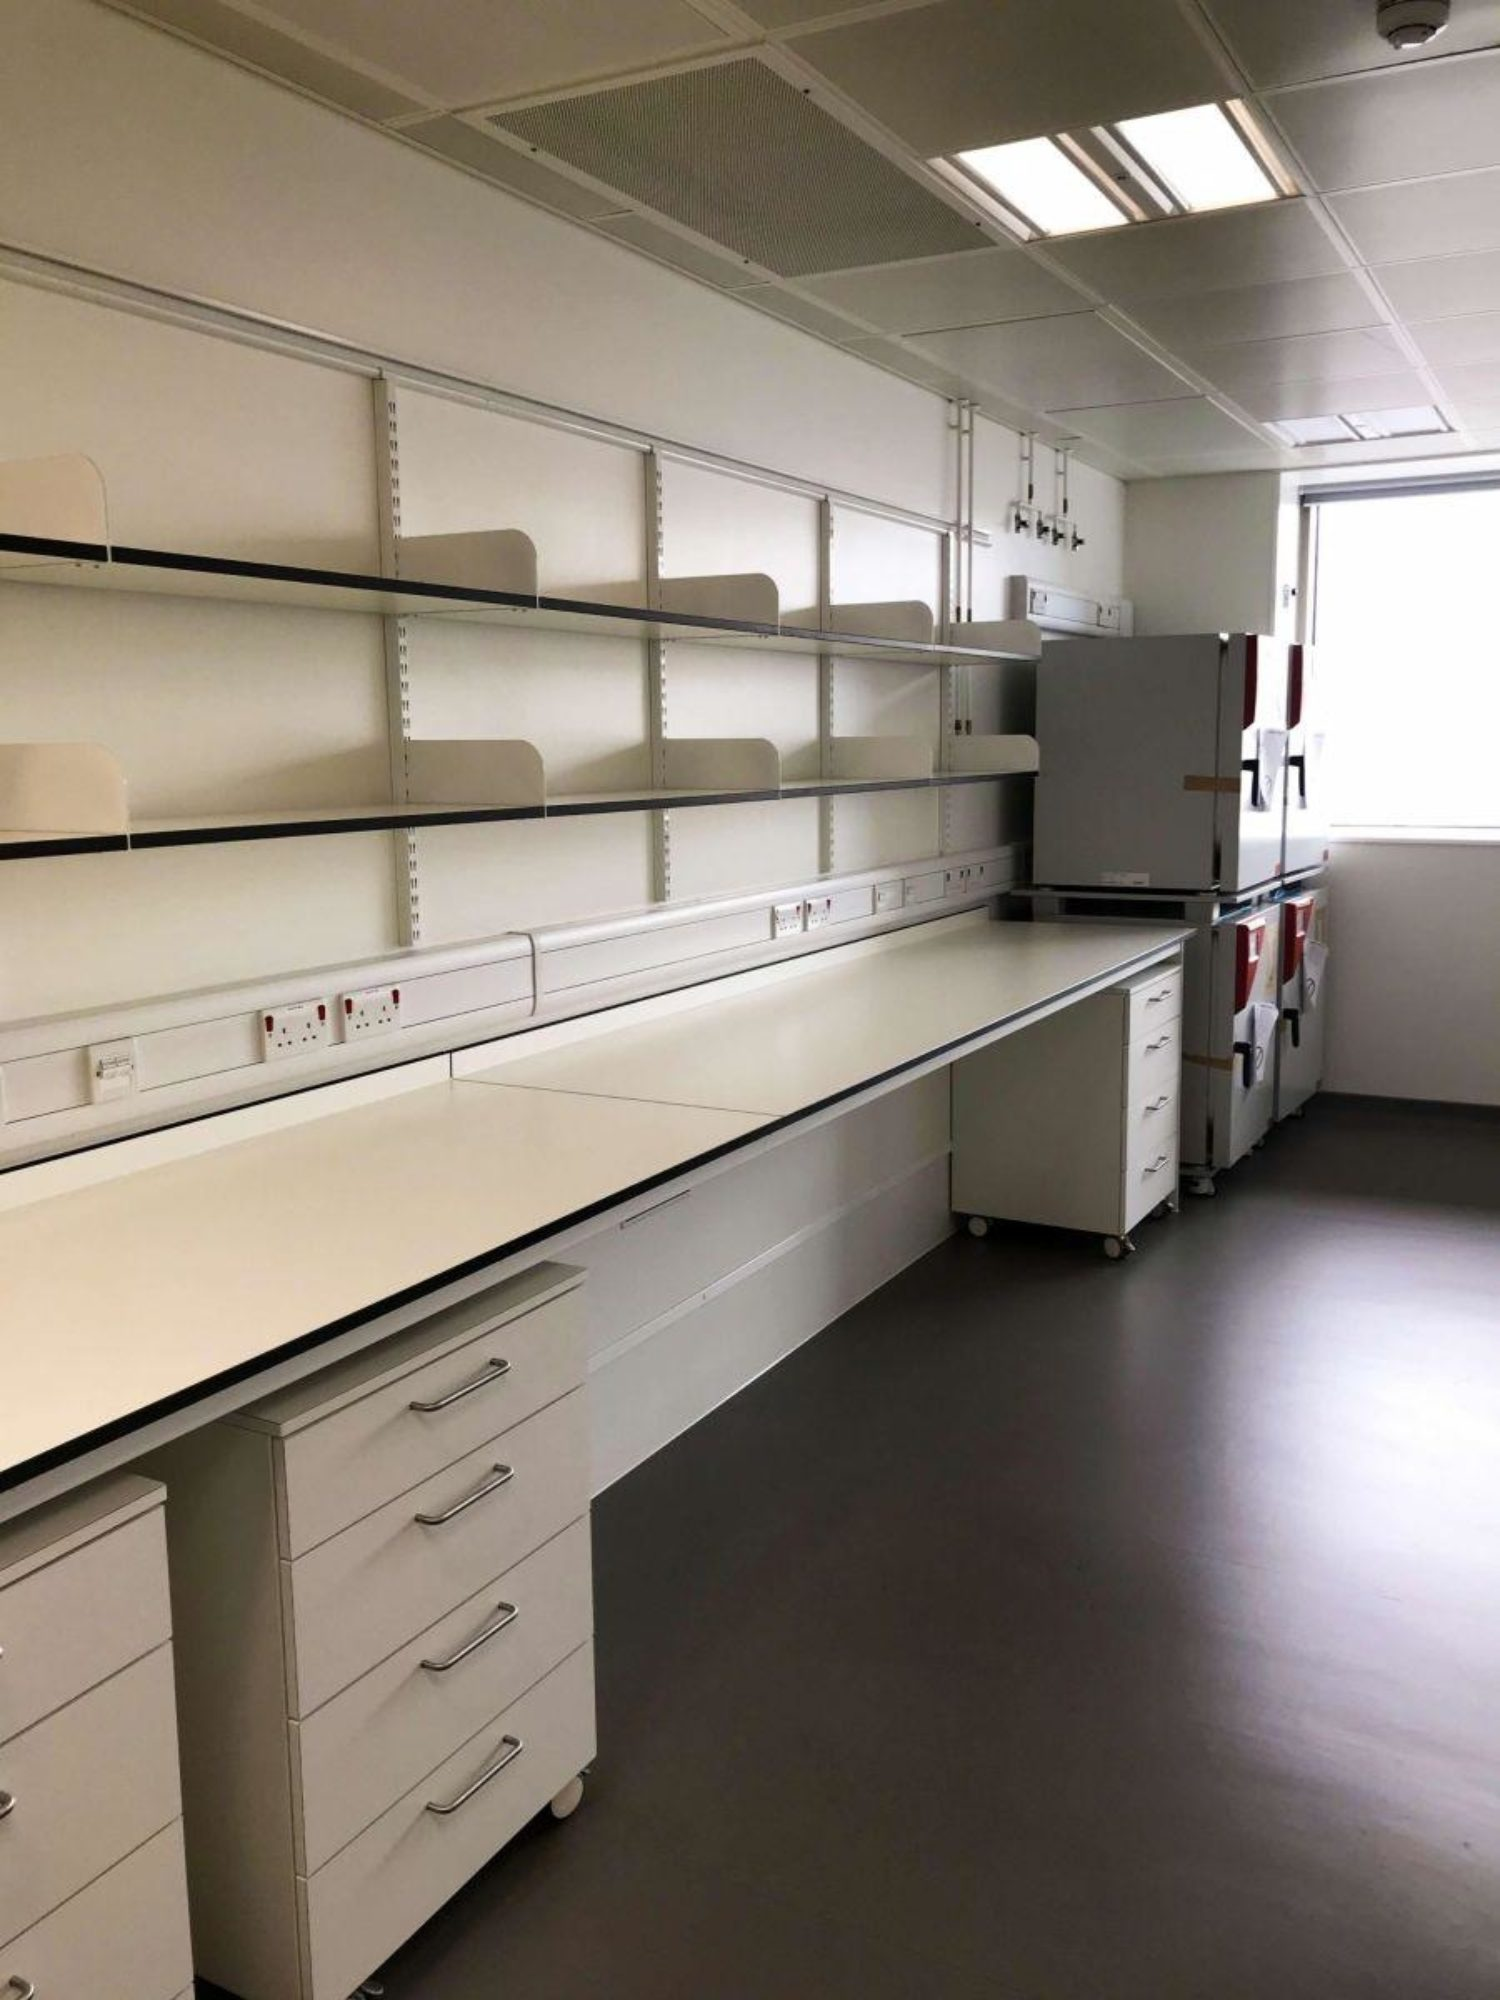 Kings College London lab refurbishment